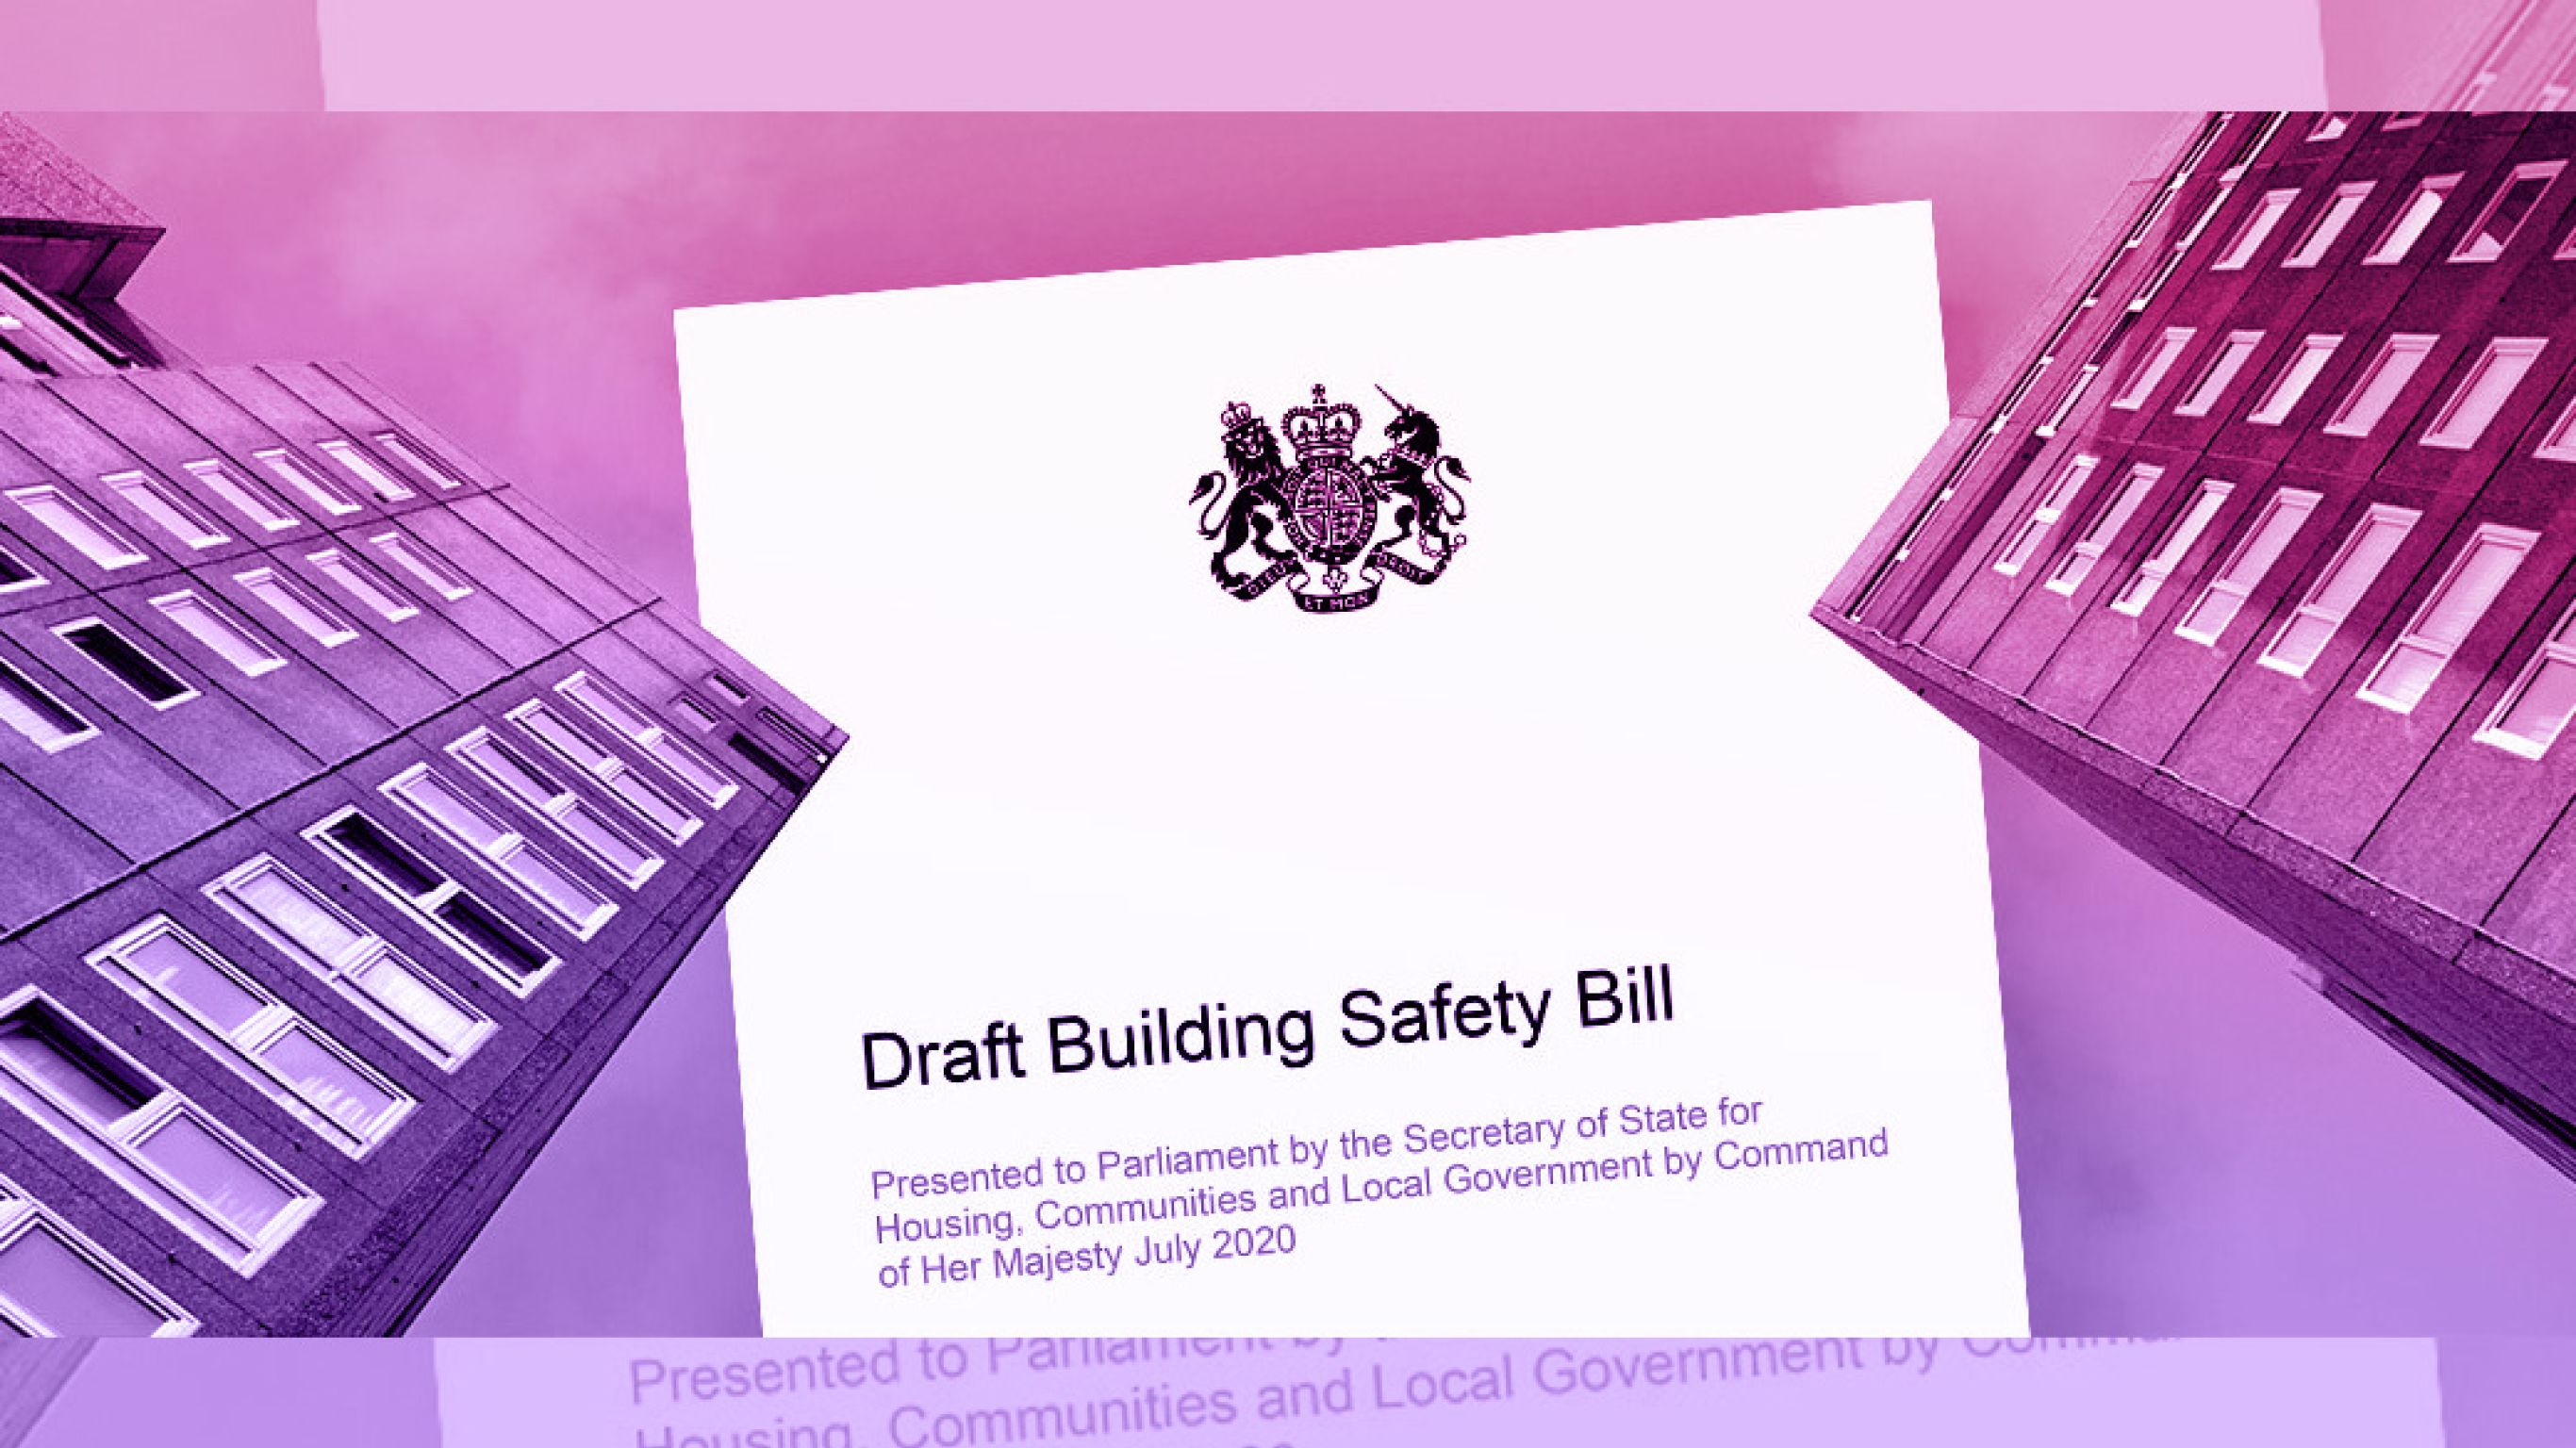 The Building Safety Bill